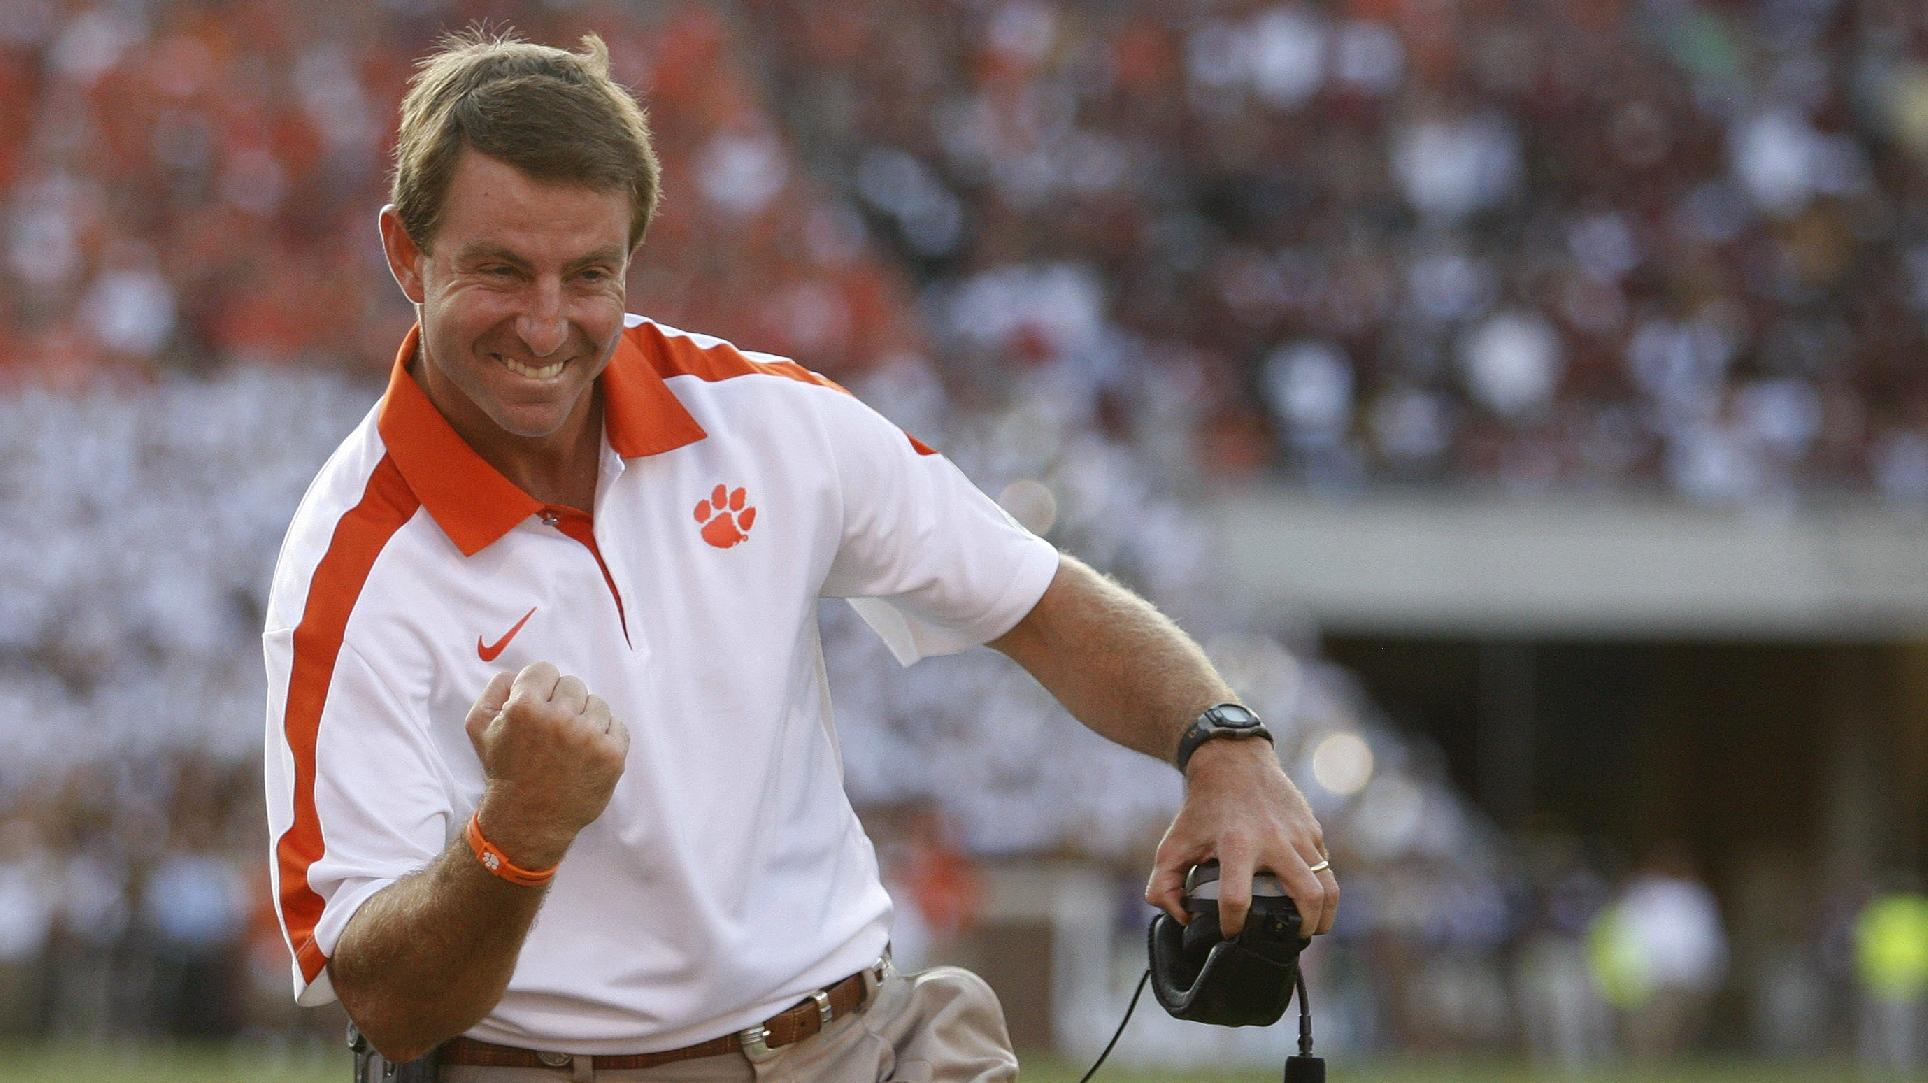 Clemson 14th in Preseason USA Today Poll